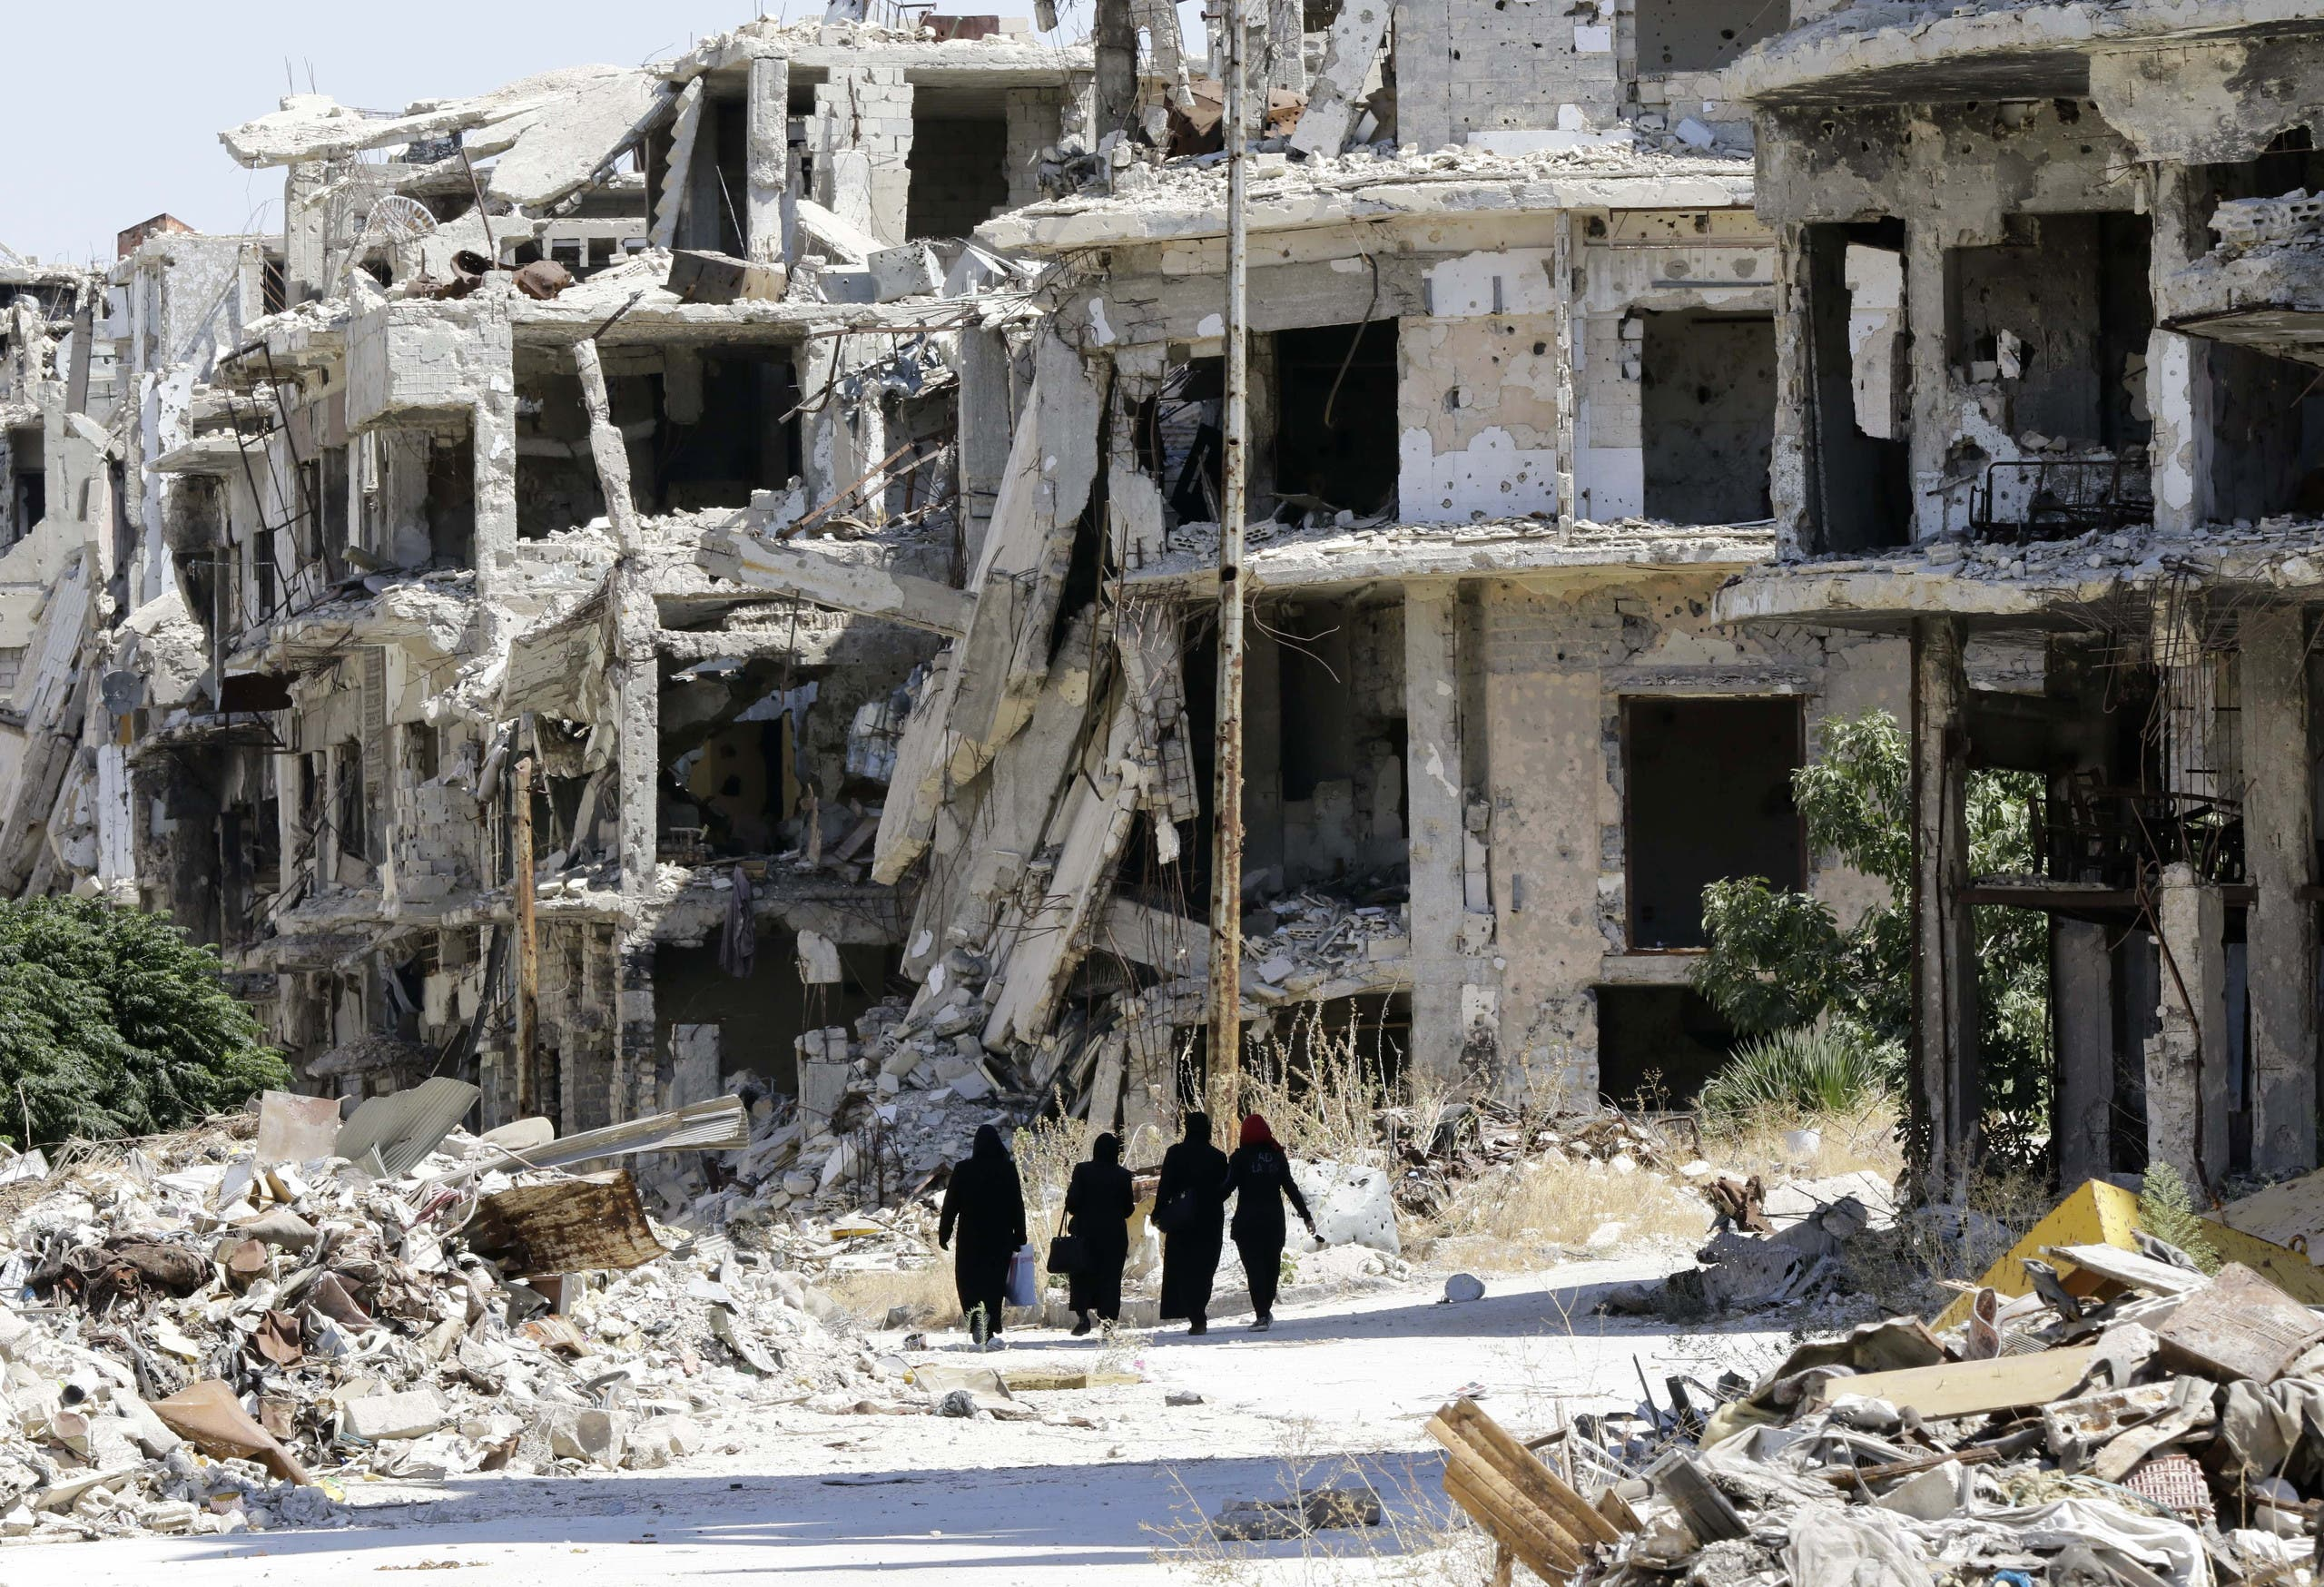 (FILES) This file photo taken on September 19, 2016 shows Syrian women walking in between destroyed buildings in the government-held Jouret al-Shiah neighbourhood of the central Syrian city of Homs. Syria's war has killed just over 320,000 people since it erupted six years ago, the Britain-based Syrian Observatory for Human Rights said on March 13, 2017, noting that a fragile ceasefire had helped to slow the rising death toll. AFP